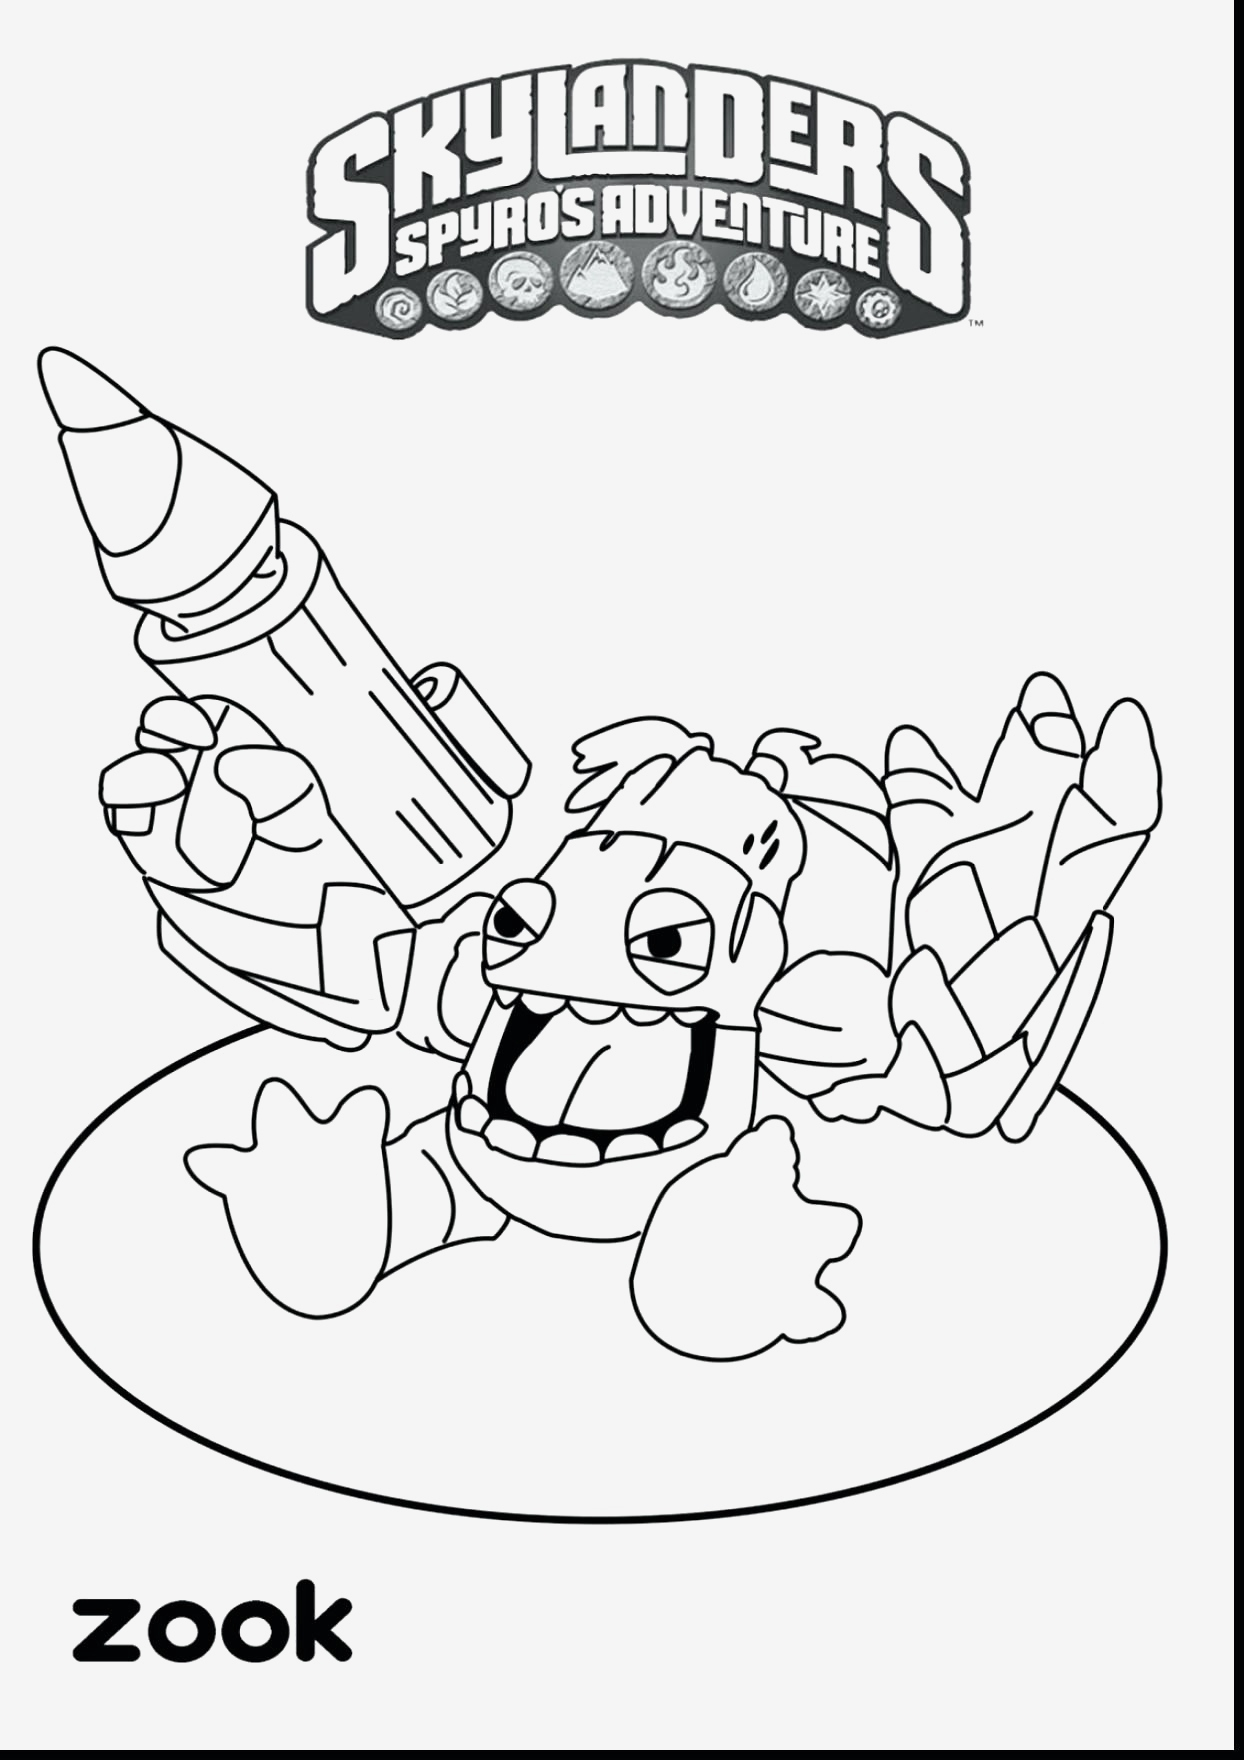 turkey coloring pages for preschoolers Download-Free Printable Thanksgiving Coloring Pages Free Download Turkey Coloring Pages Free Printable 2 New Printable Fresh 11-p